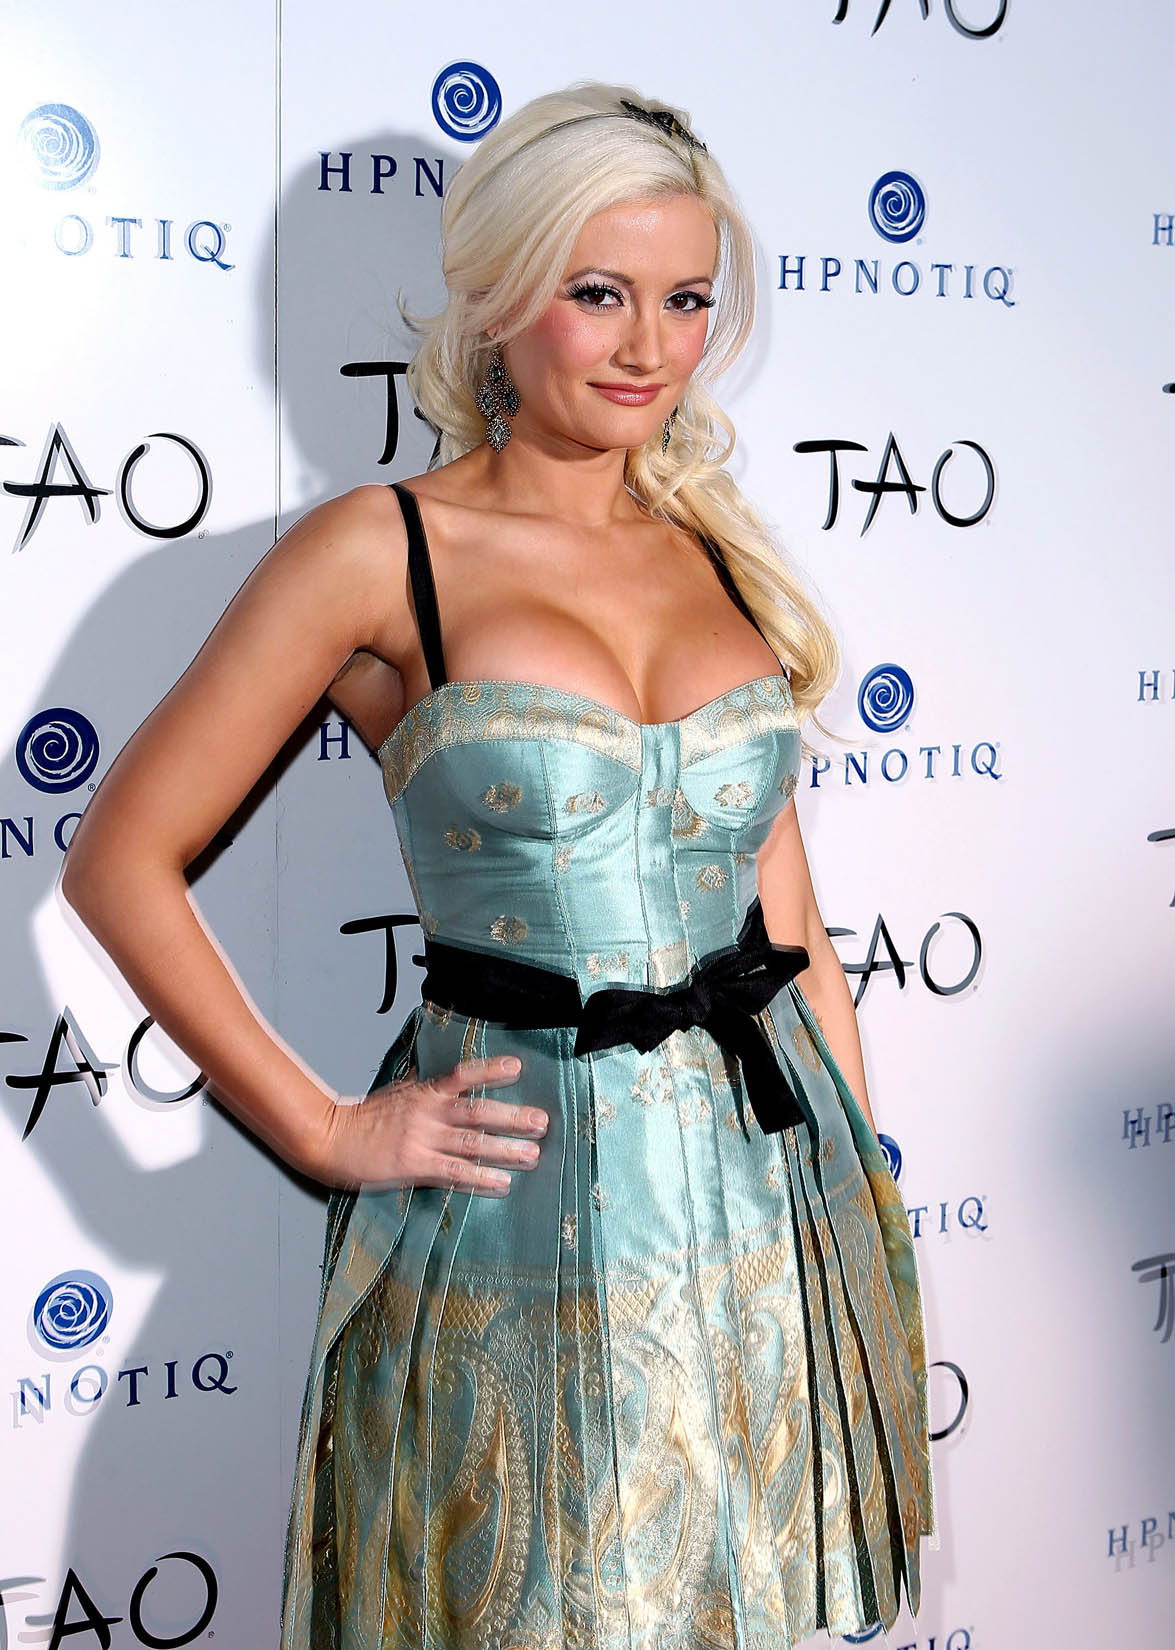 Holly Madison Nude Video Clips